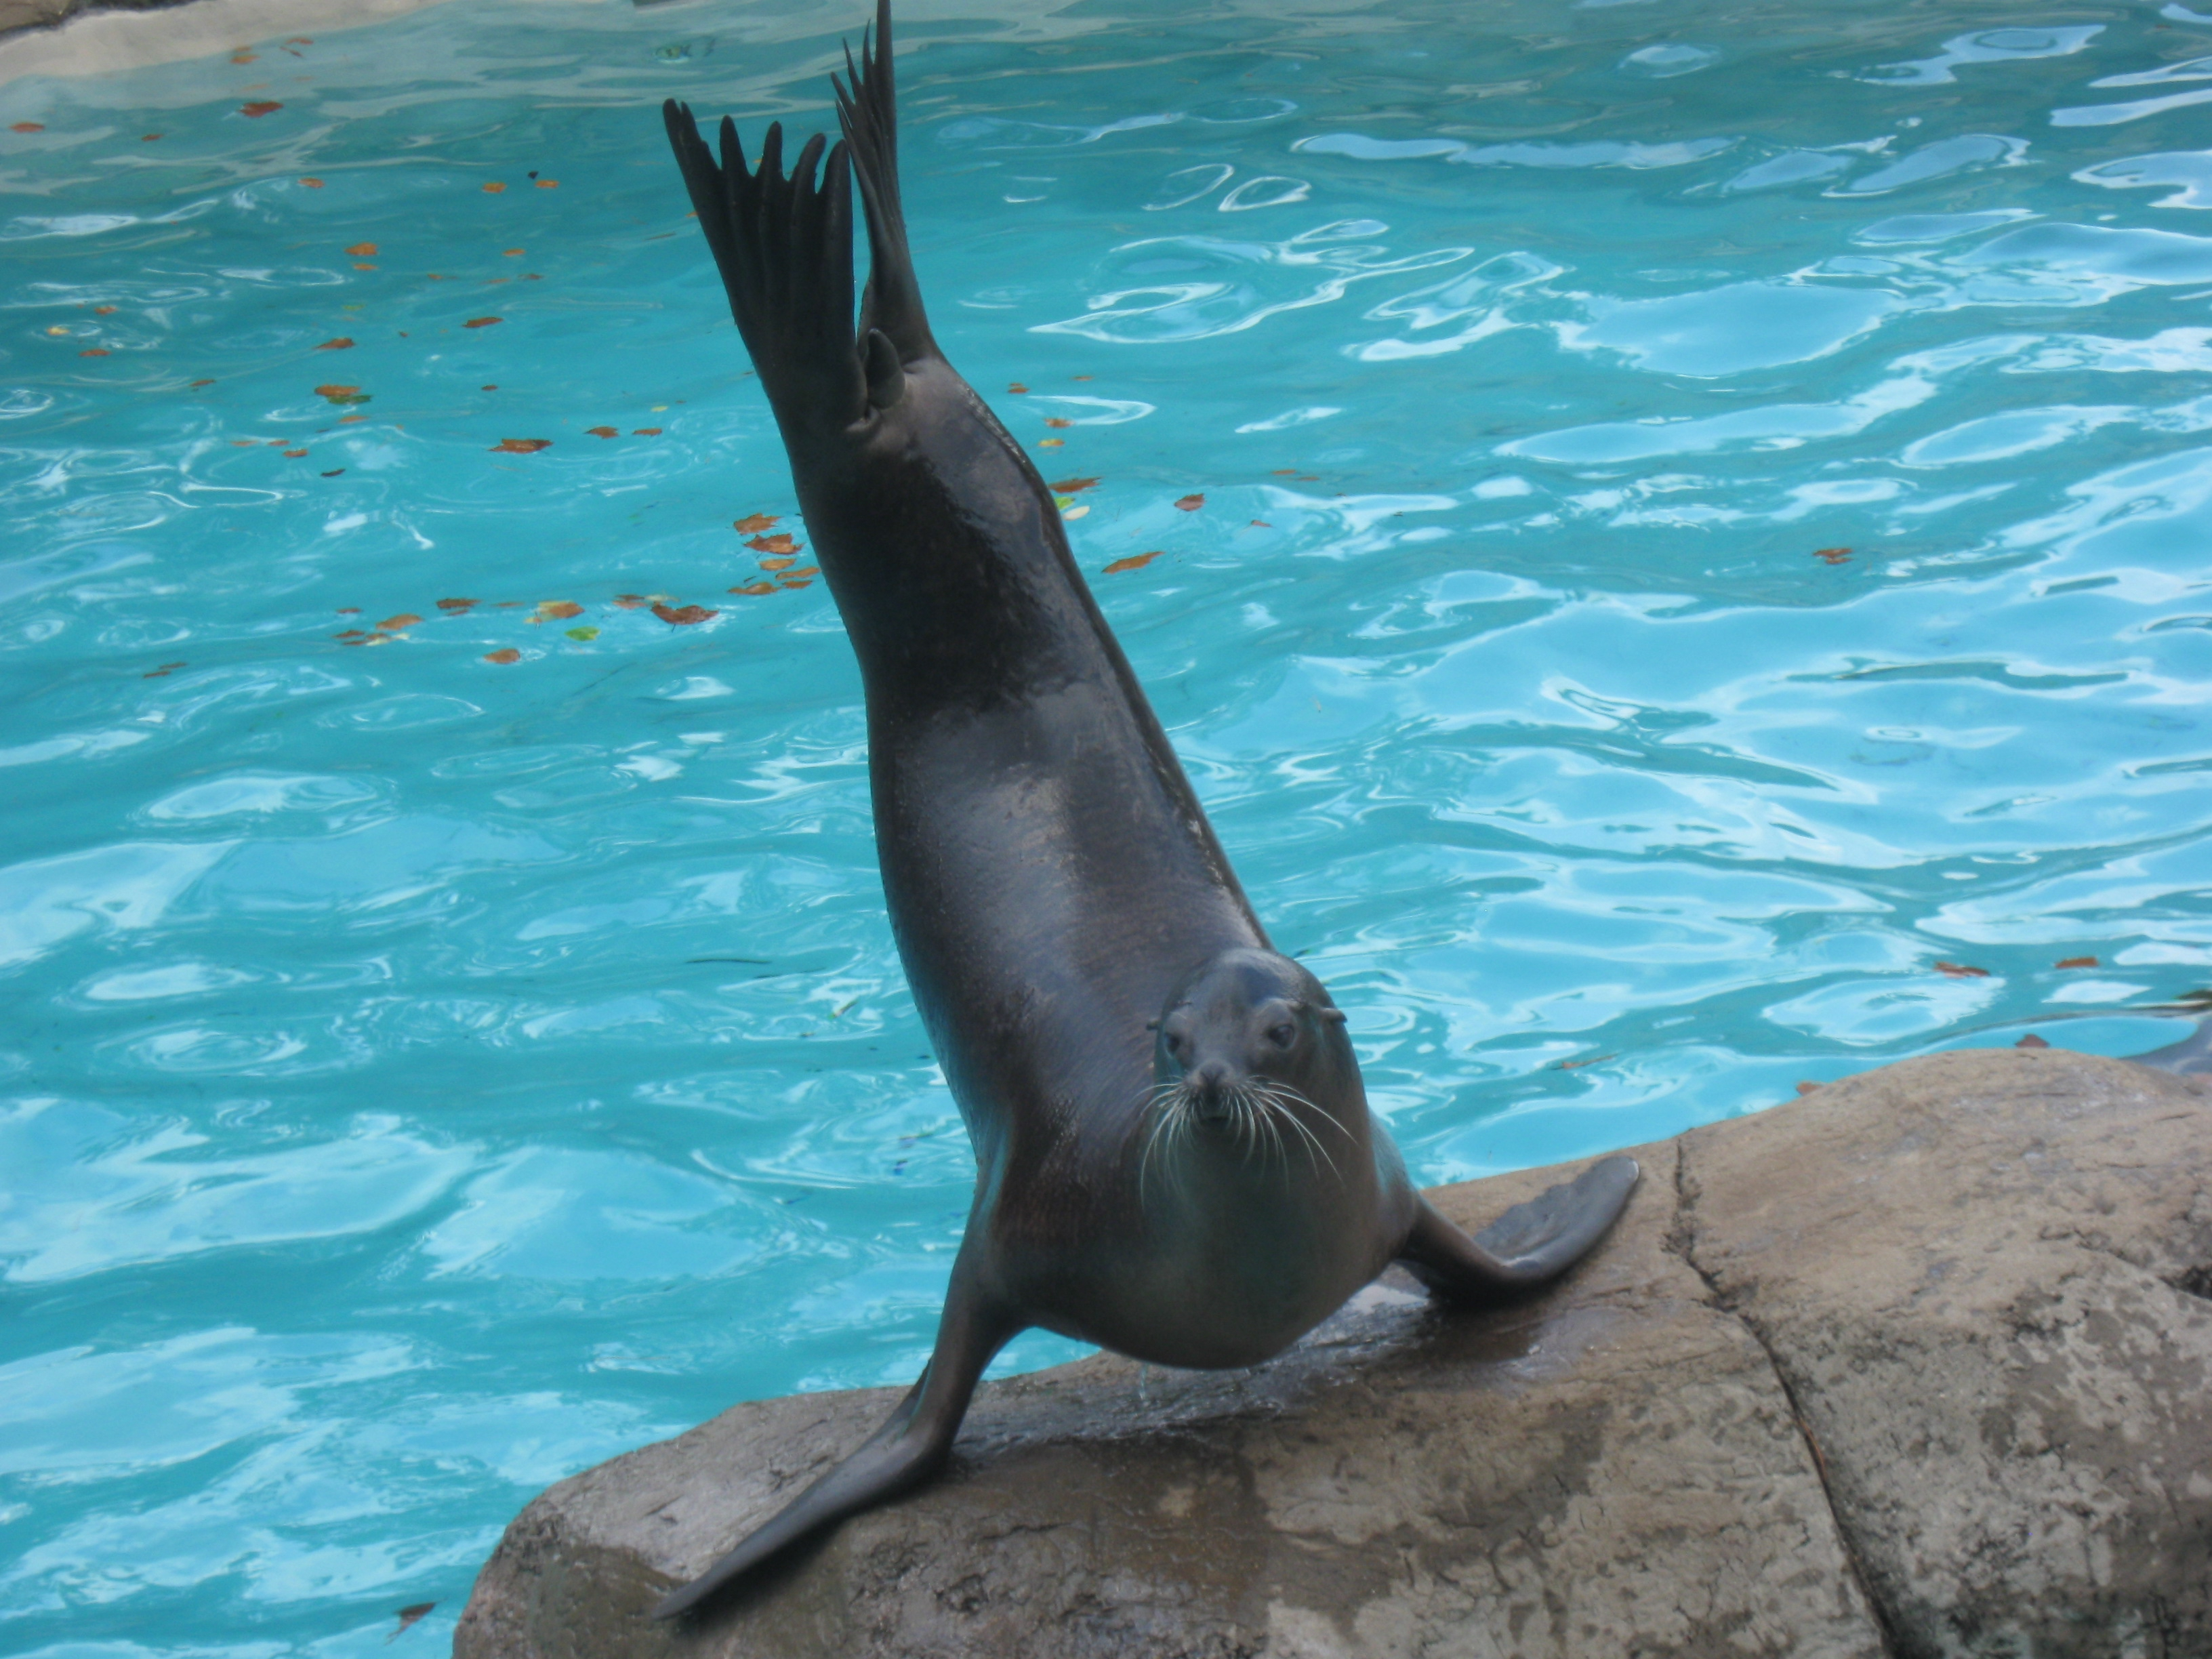 Seal Free Images